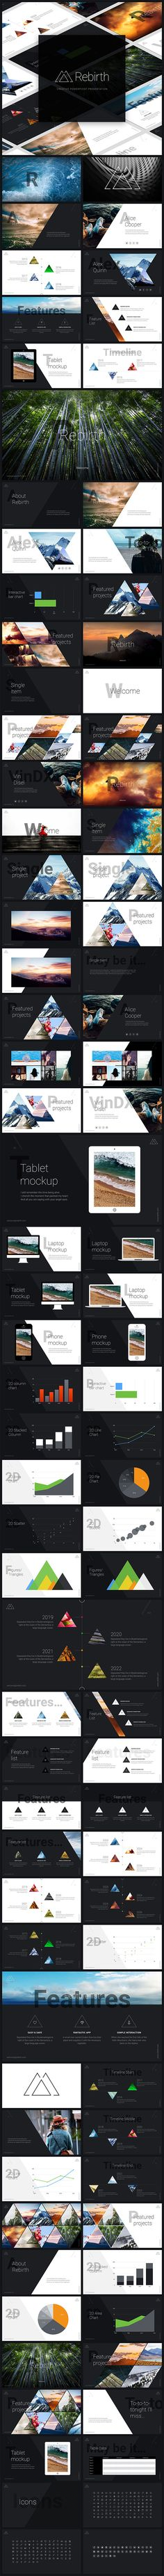 Rebirth PowerPoint Presentation Template. Download here: http://graphicriver.net/item/rebirth-powerpoint-presentation/15200848?ref=ksioks